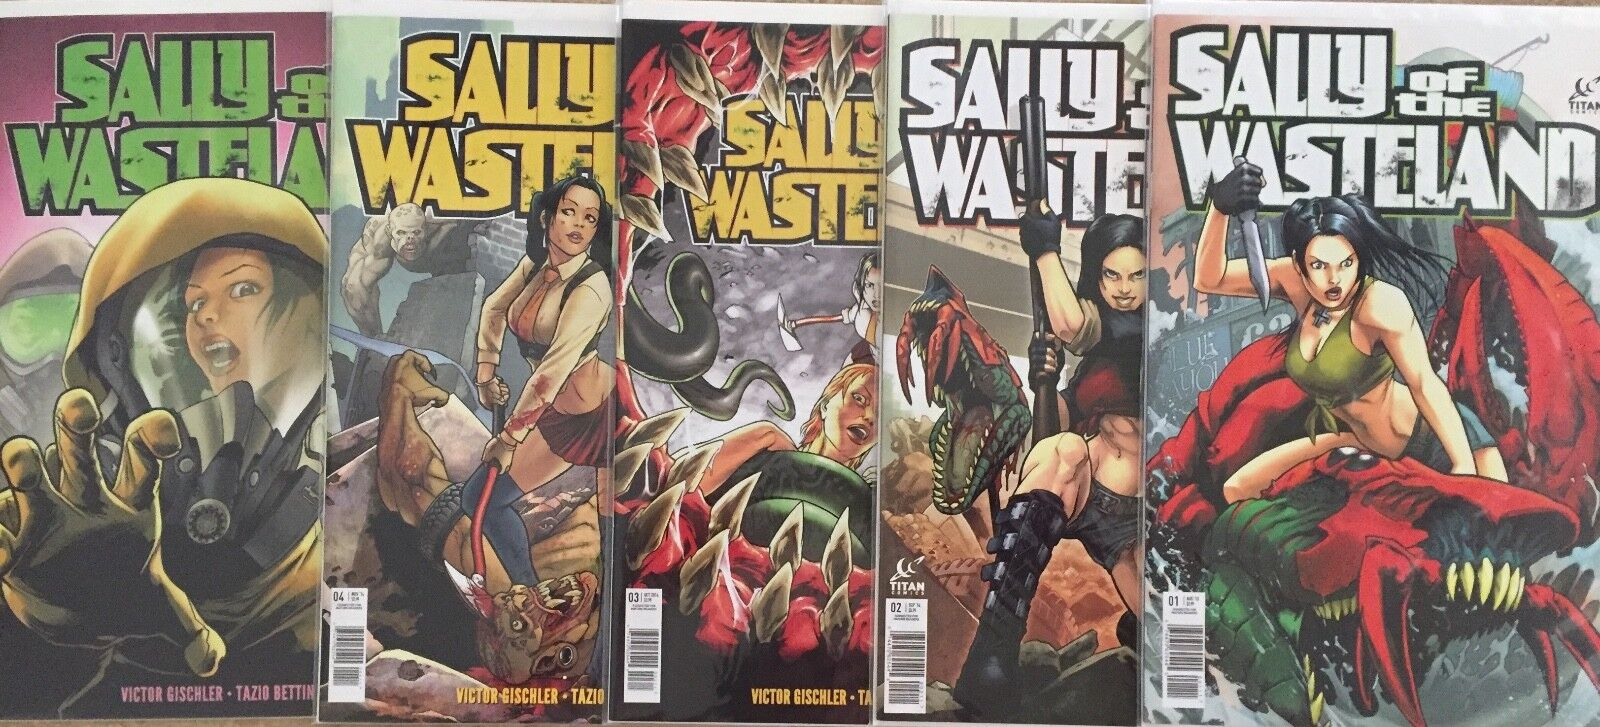 Sally Of The Wasteland Titan Comics, 2014  - $15.00